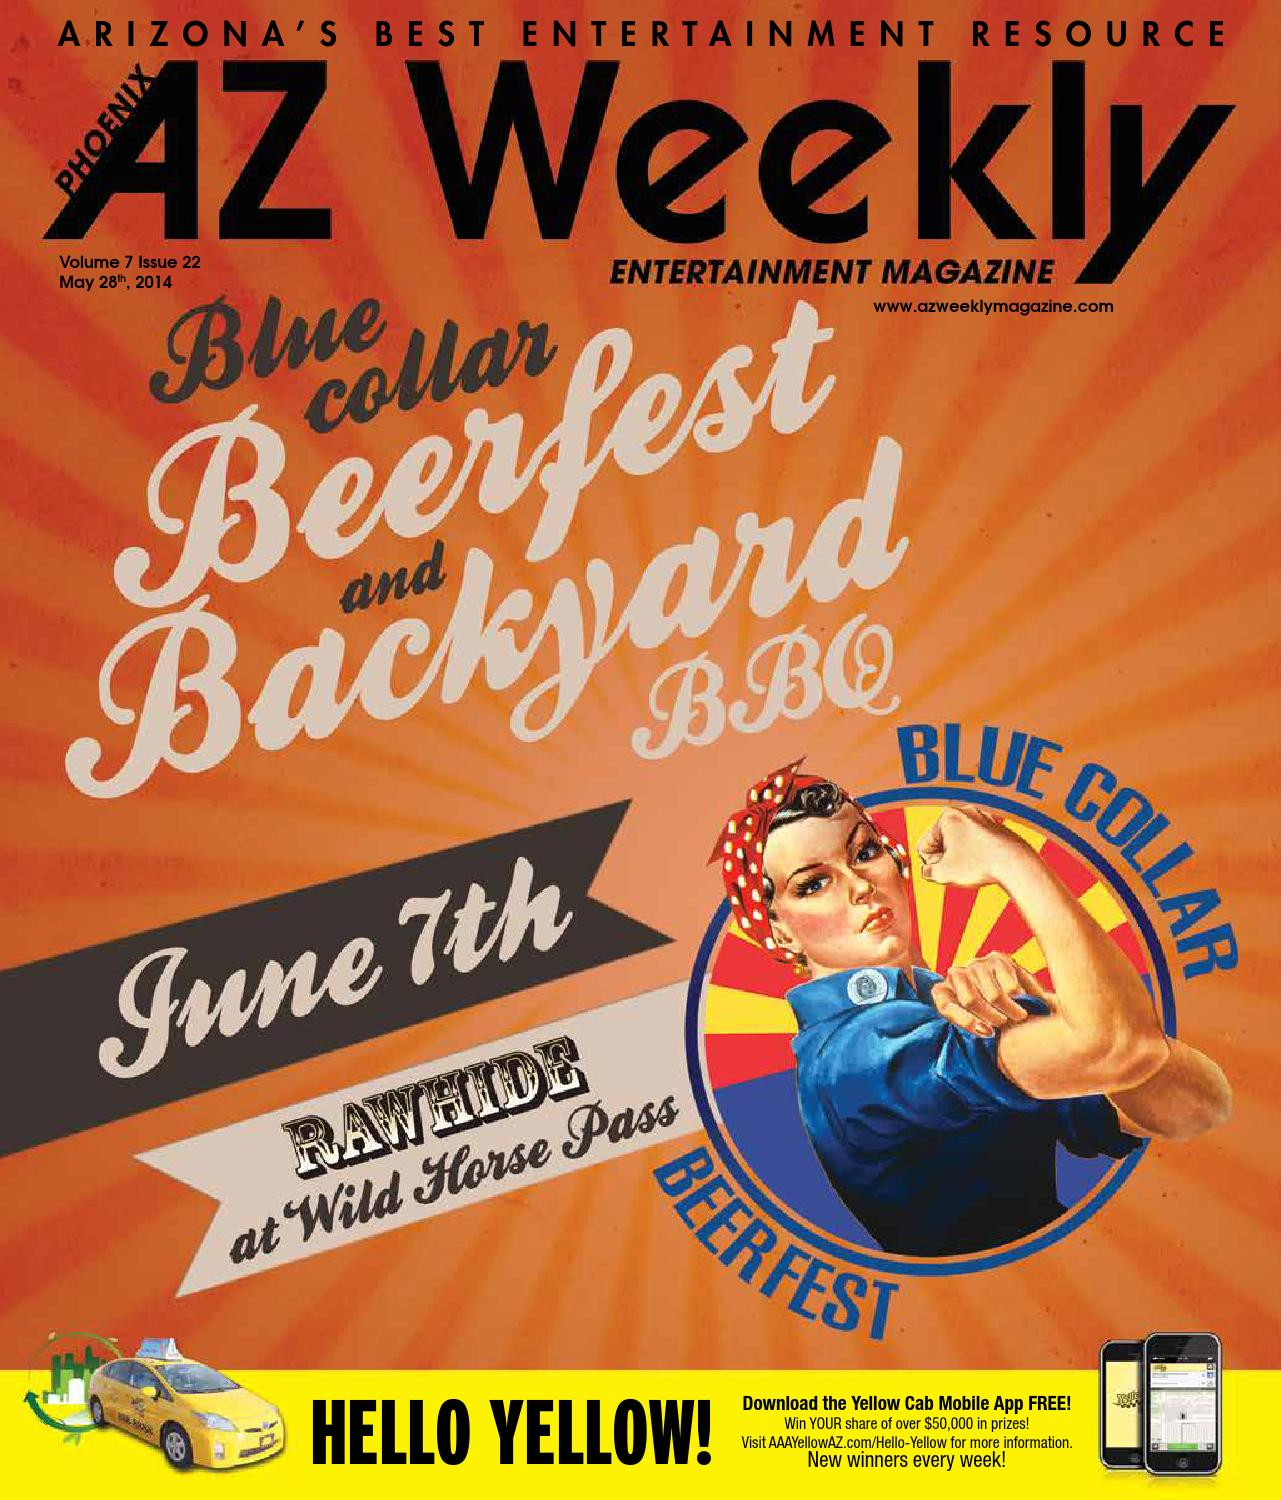 Azweekly issue28 phx web by AZ Weekly - issuu